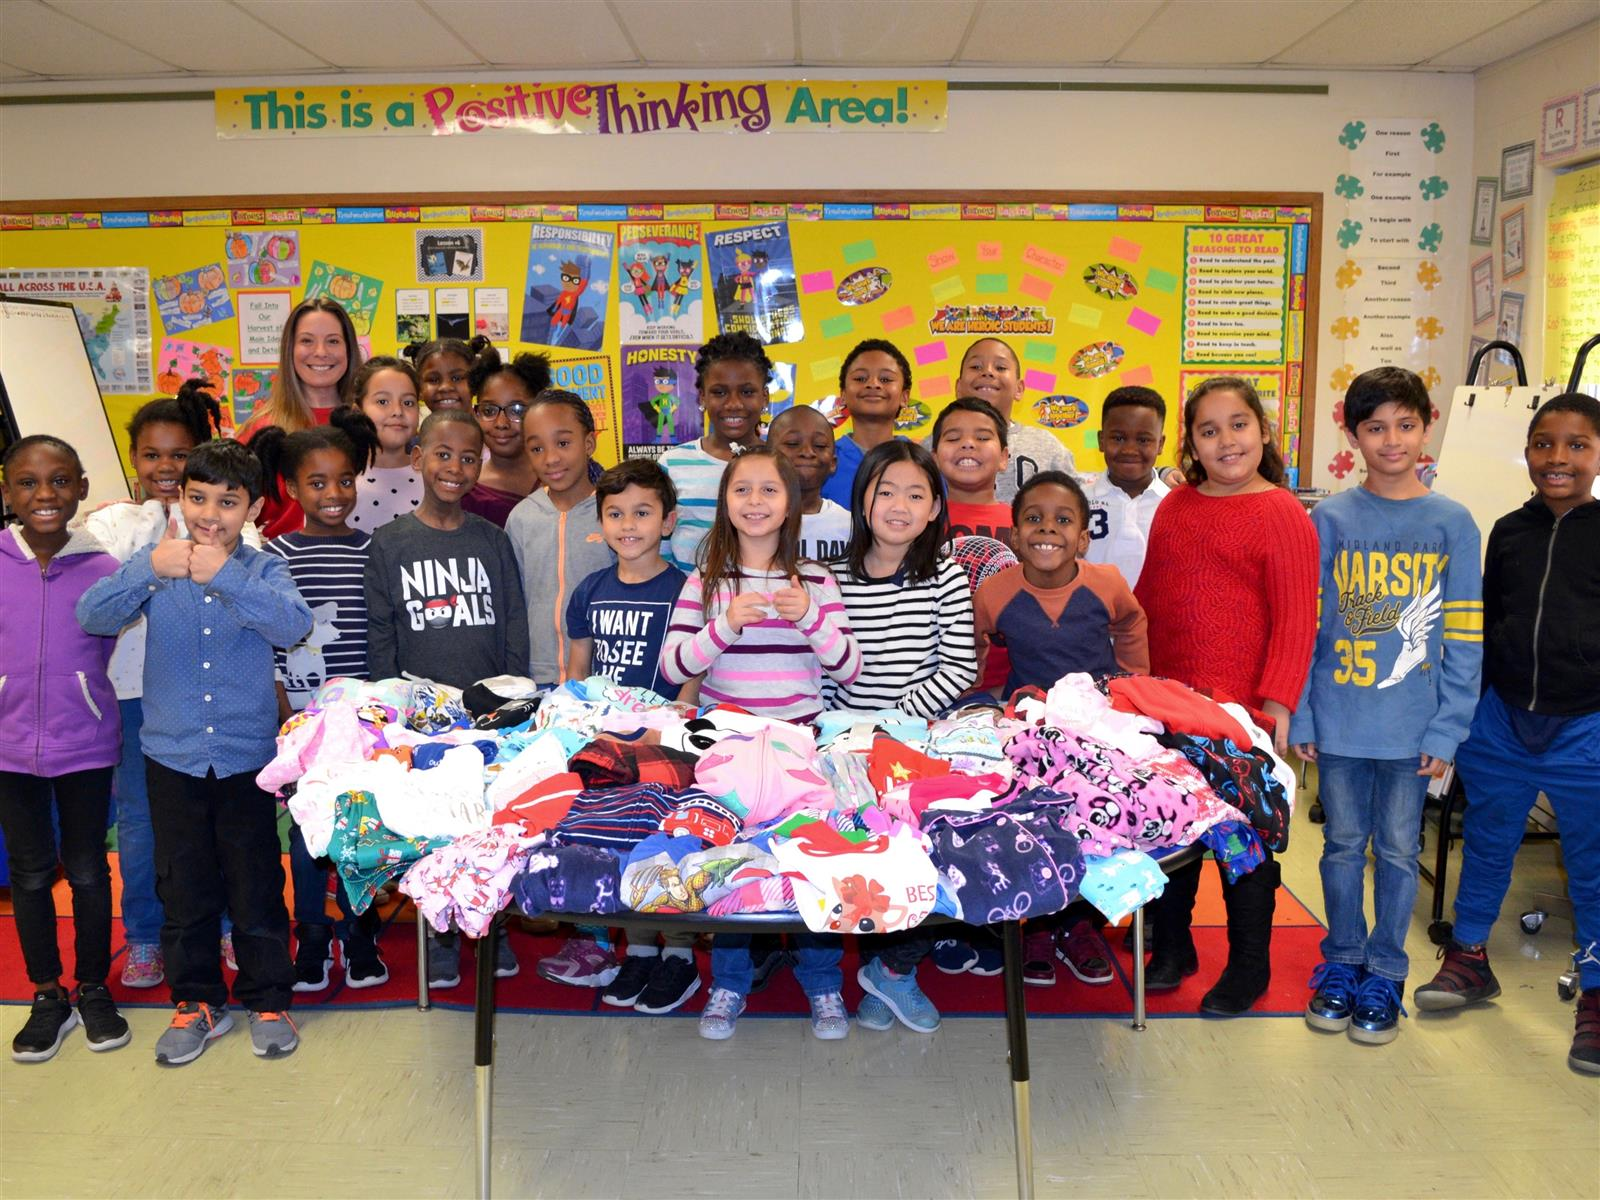 Shaw Students Spread Warmth Photo